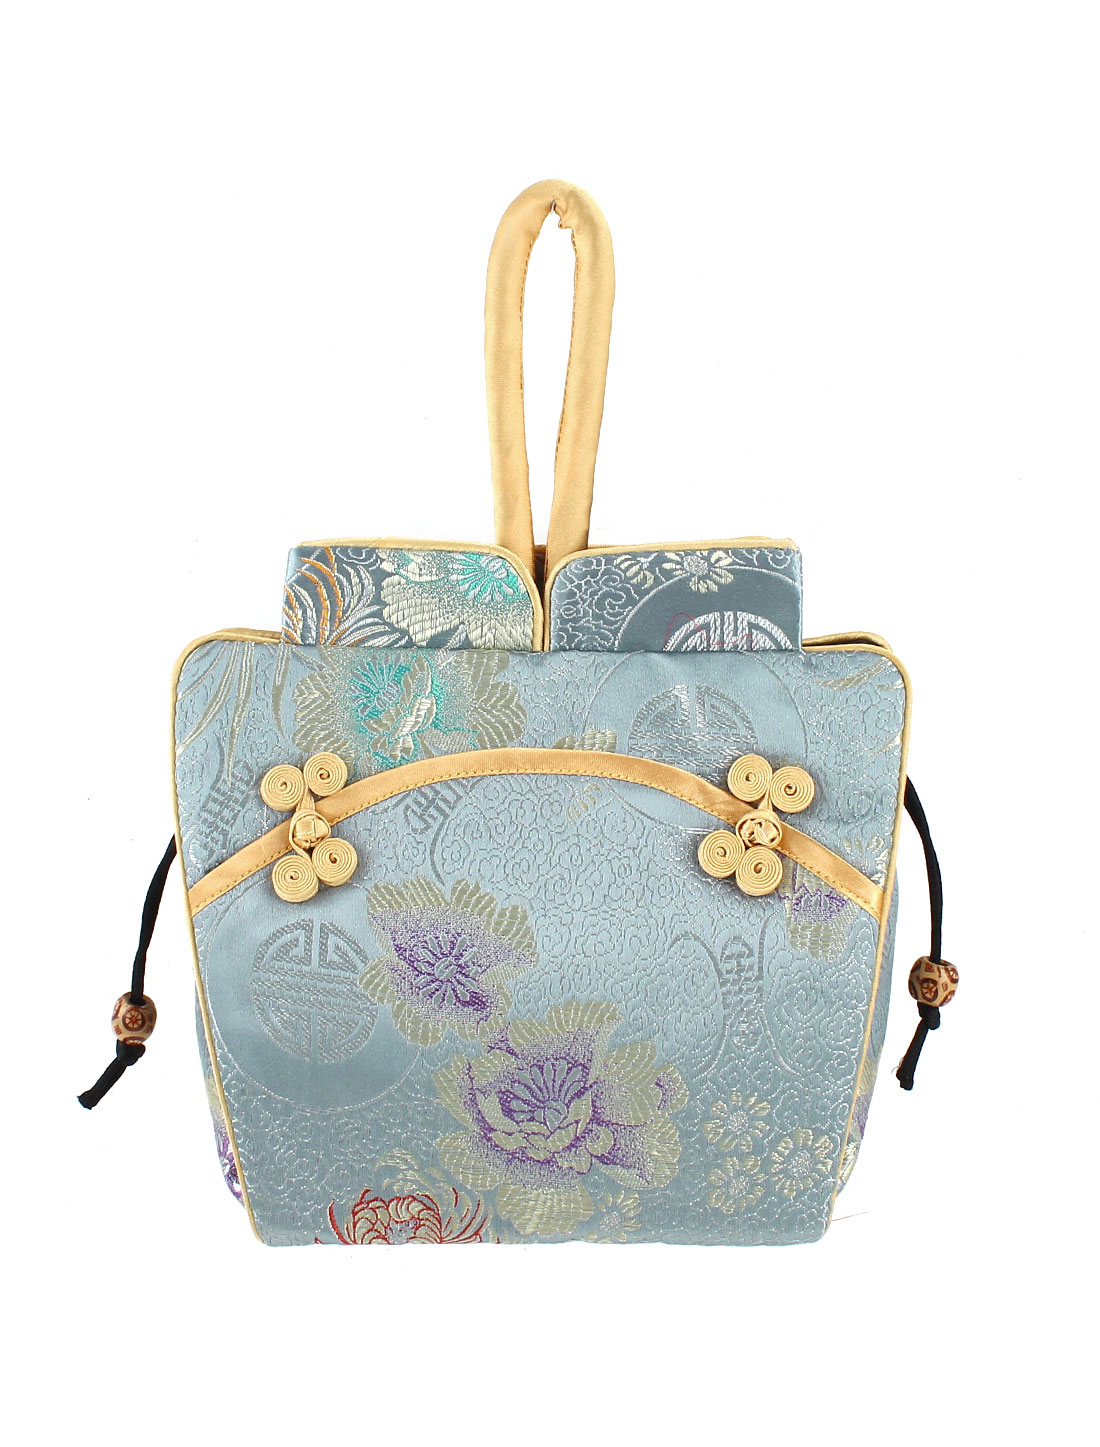 Women Brocade Cheongsam Design Embroidery Flower Pattern Drawstring Closure Handbag Purse Light Blue